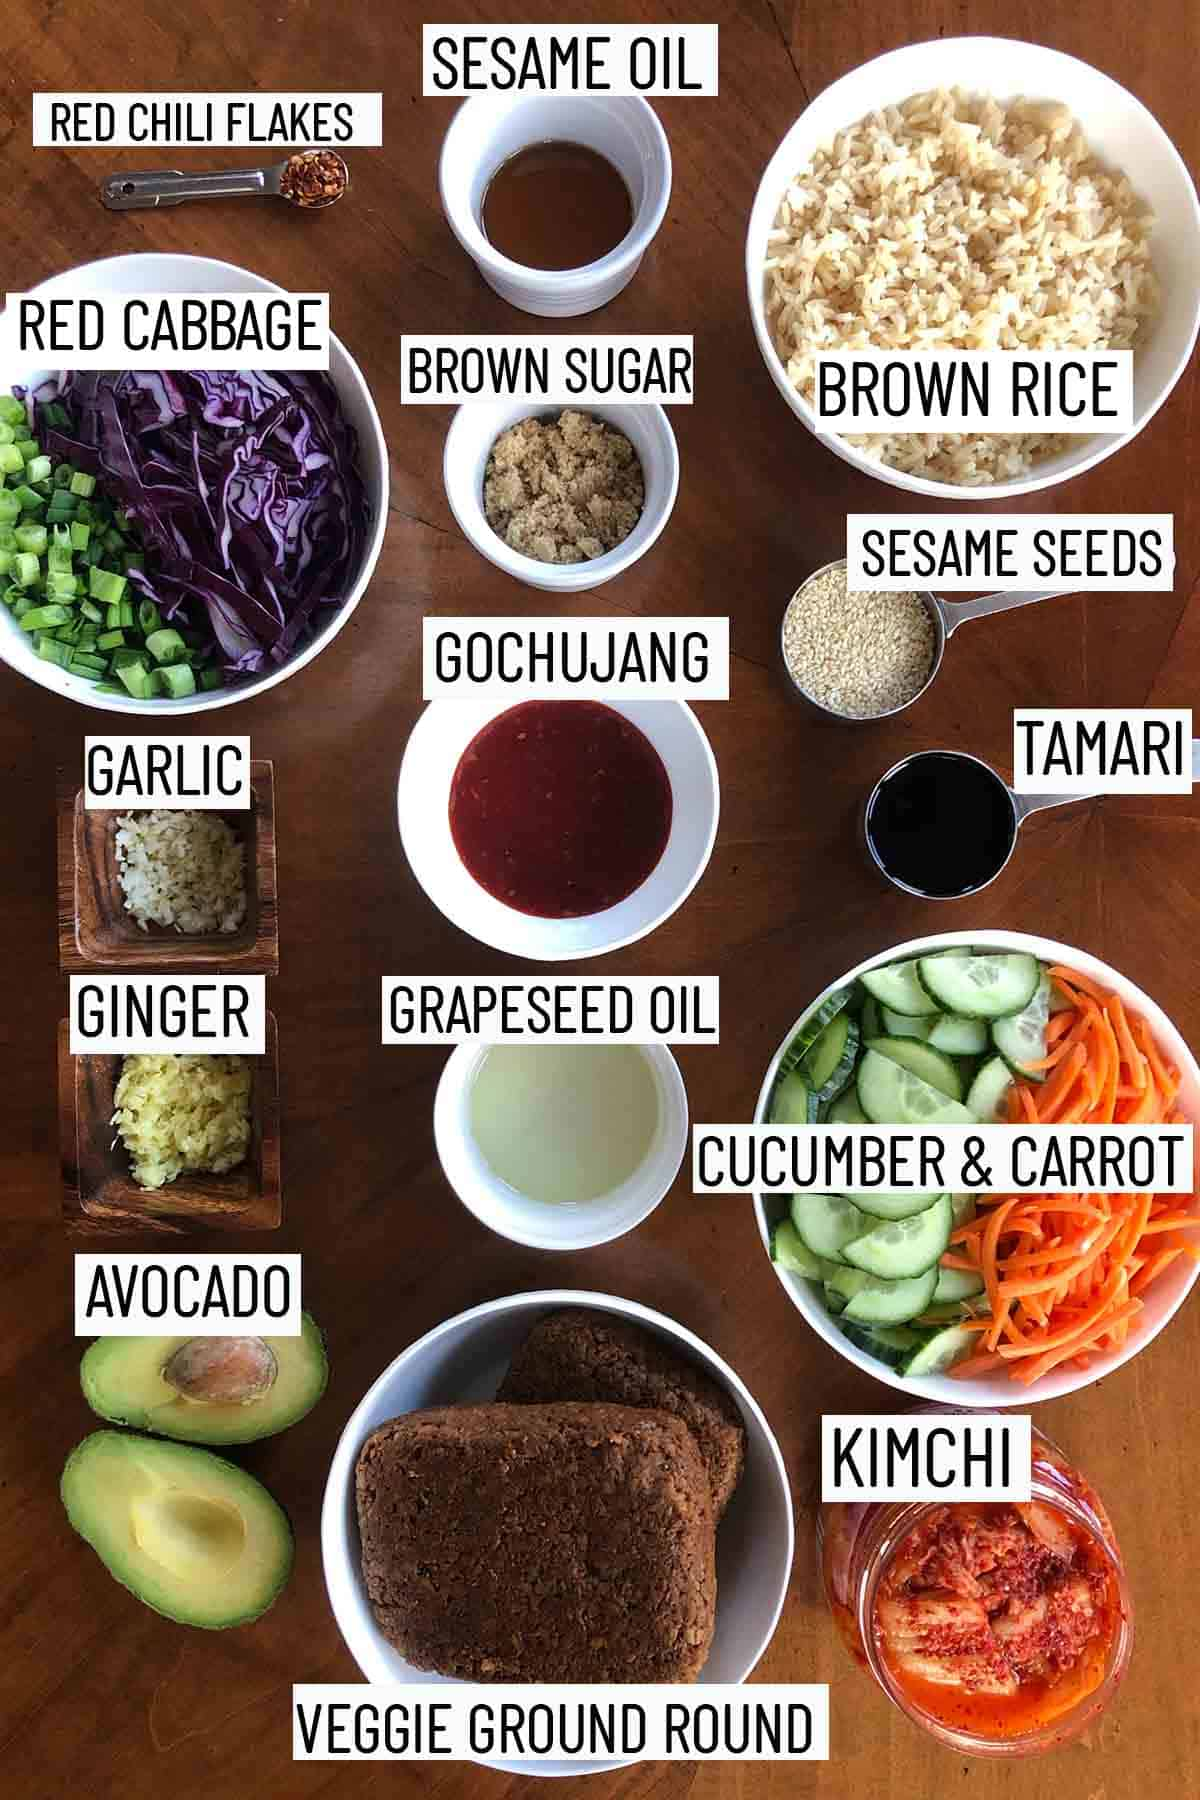 Flat lay image of portioned ingredients for recipe including the vegetable toppings, ingredients for the sauce, and the veggie meat.